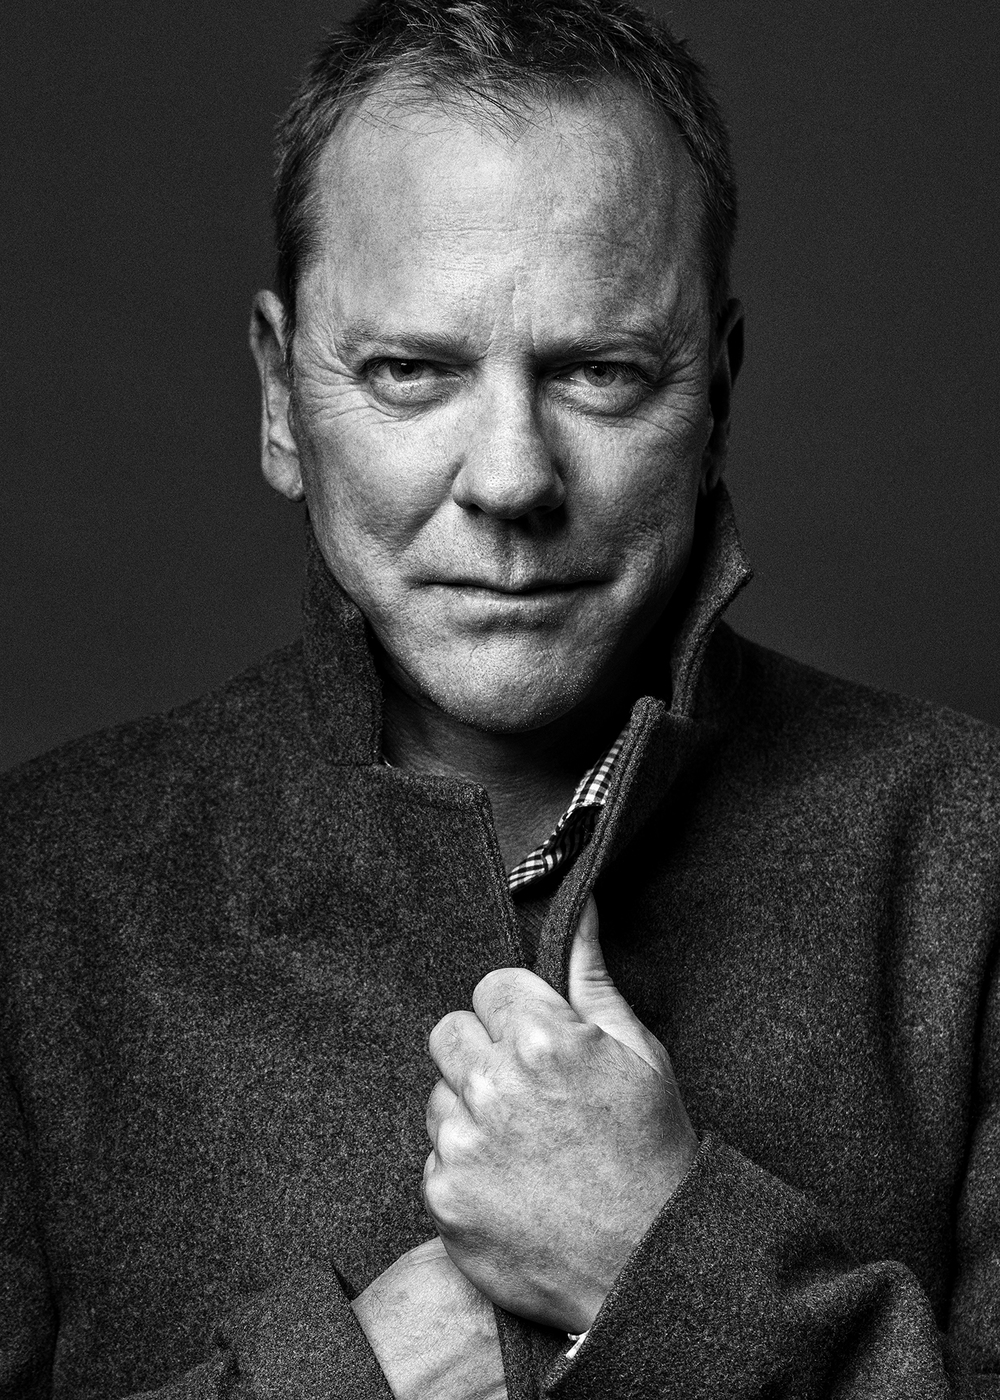 Kiefer Sutherland – Actor